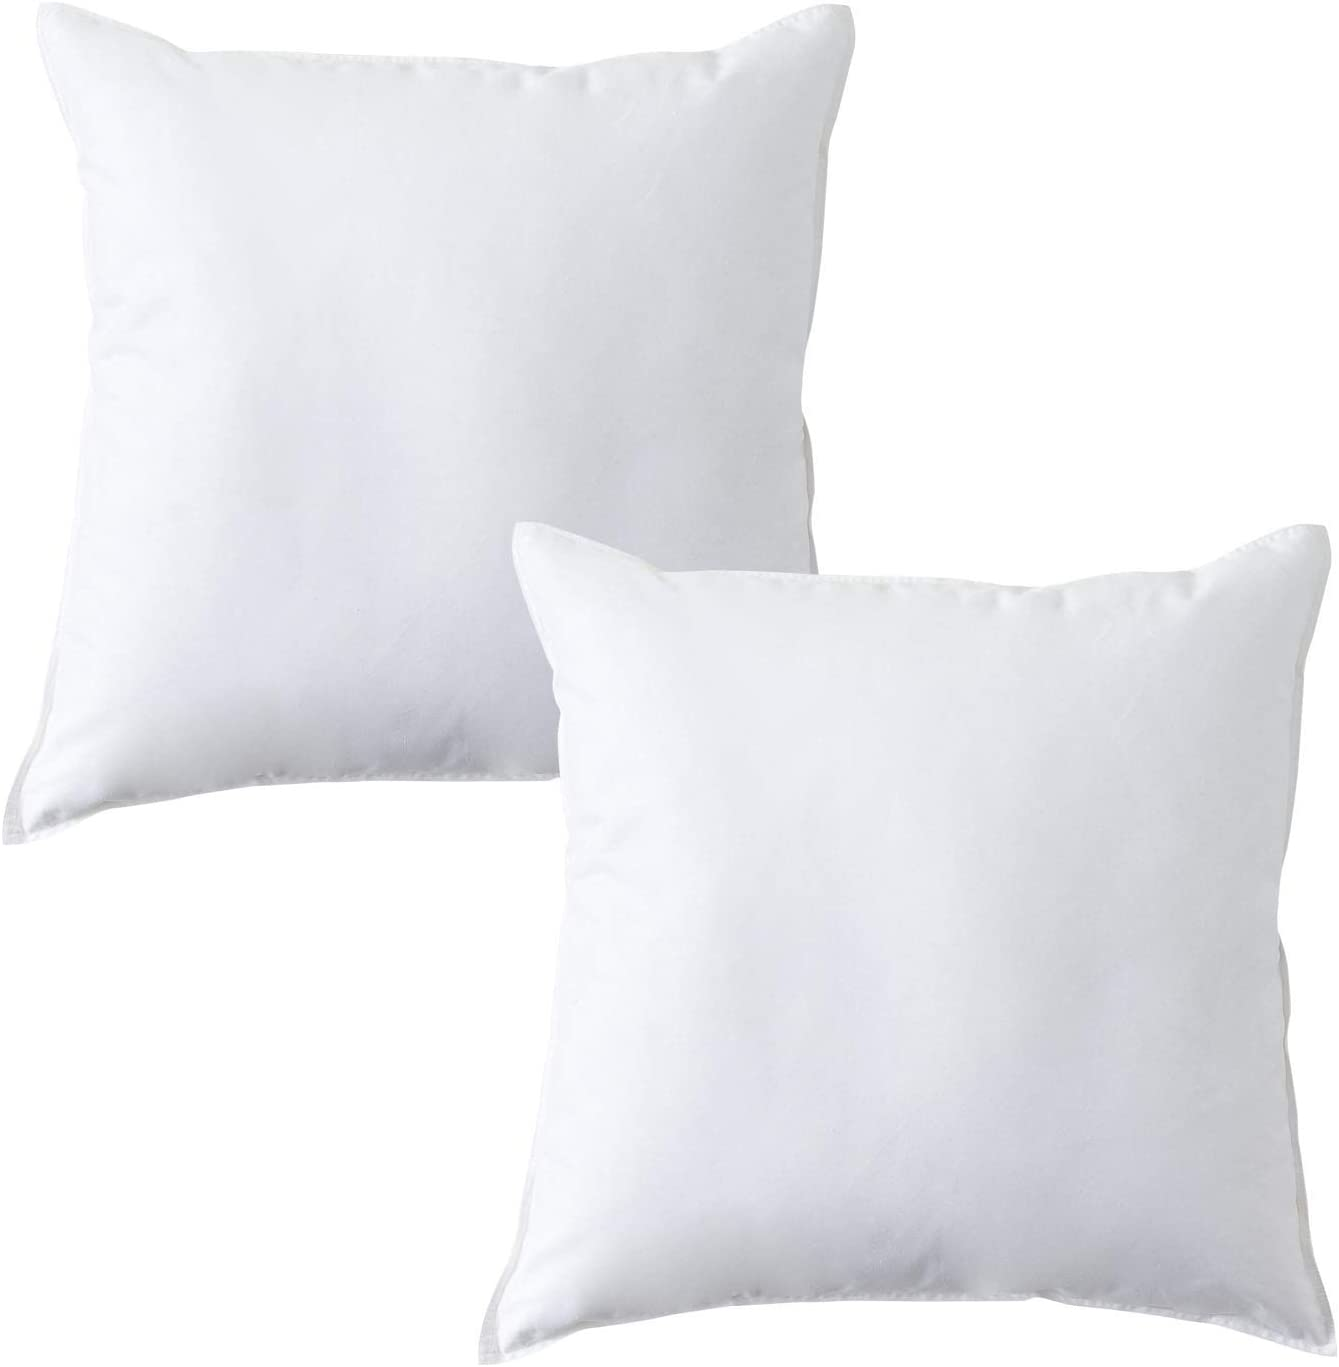 """3 x 24/"""" x 24/"""" Duck Feather Cushion Inner Pad Insert Scatter 60x60cm"""